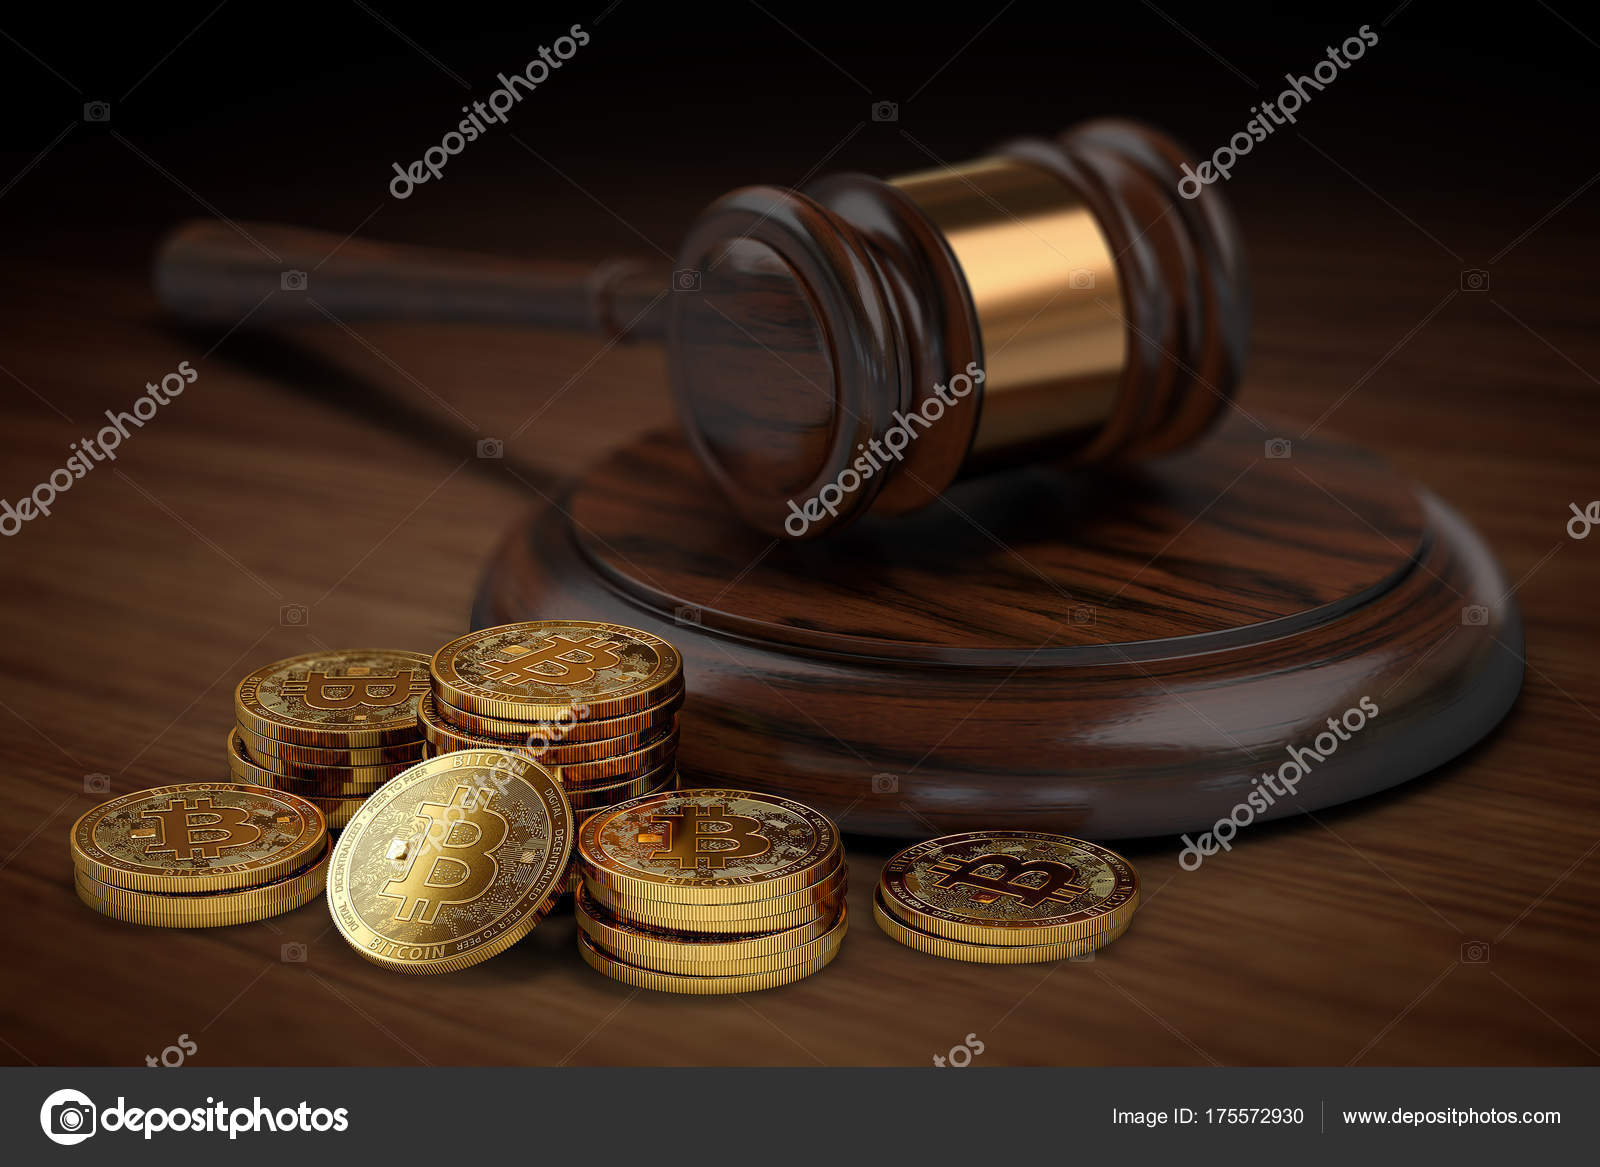 stack or piles of bitcoin in the court bitcoin taxation and legal